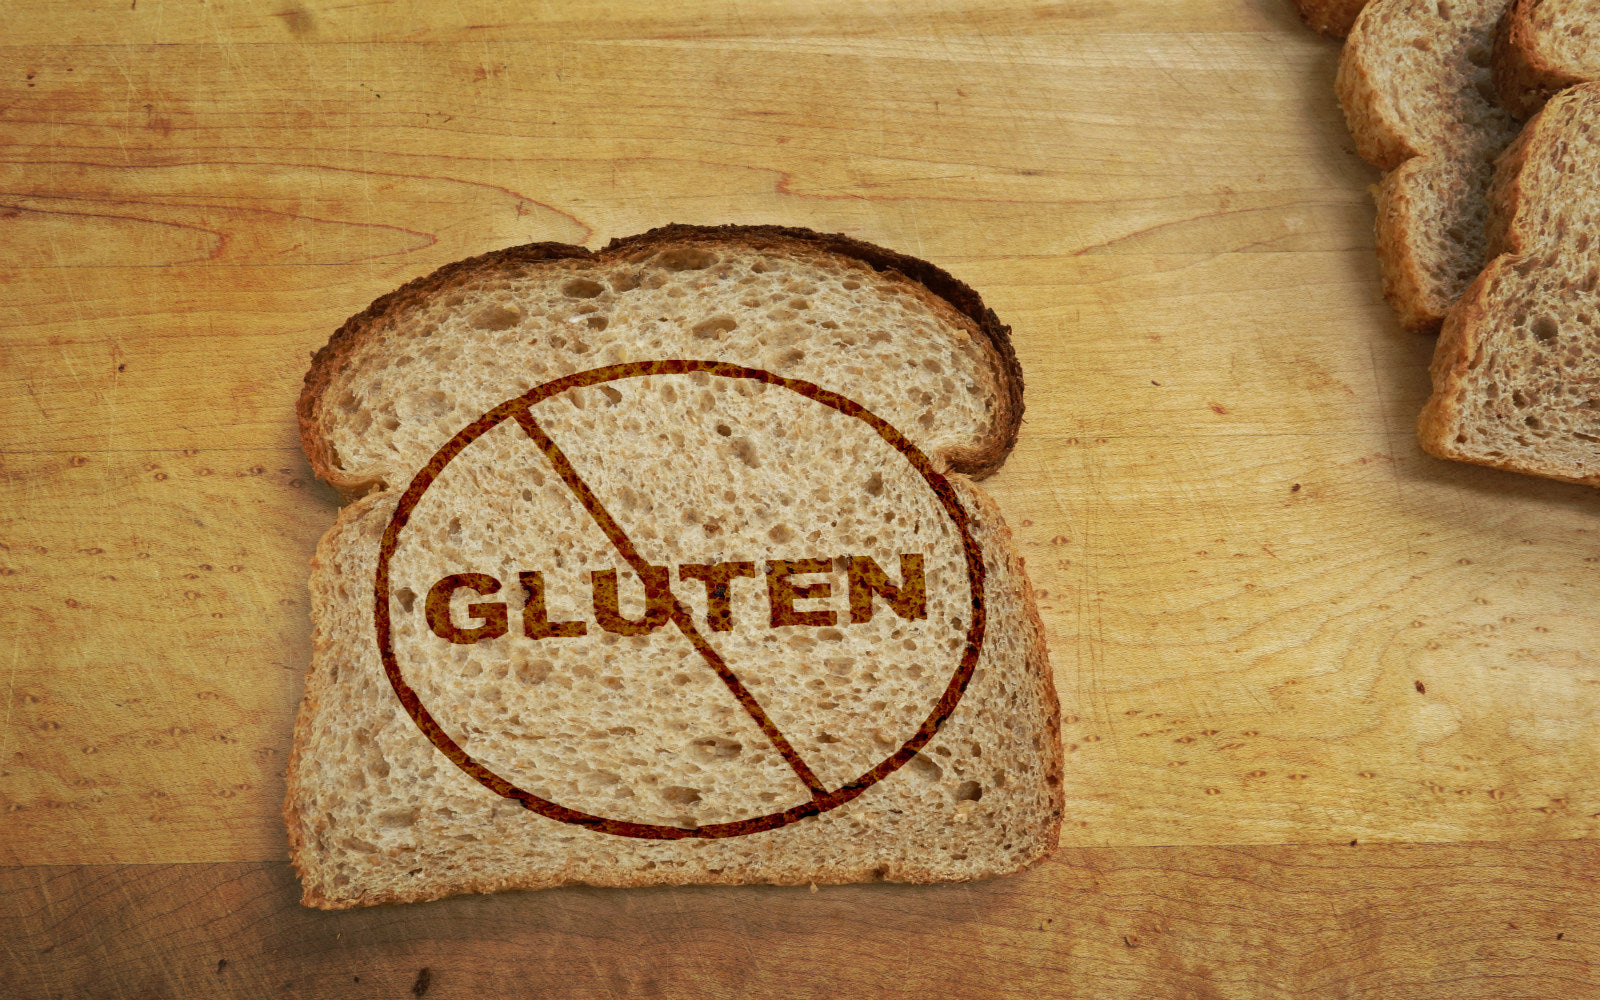 The Top 14 Surprising Places Gluten May be Hiding